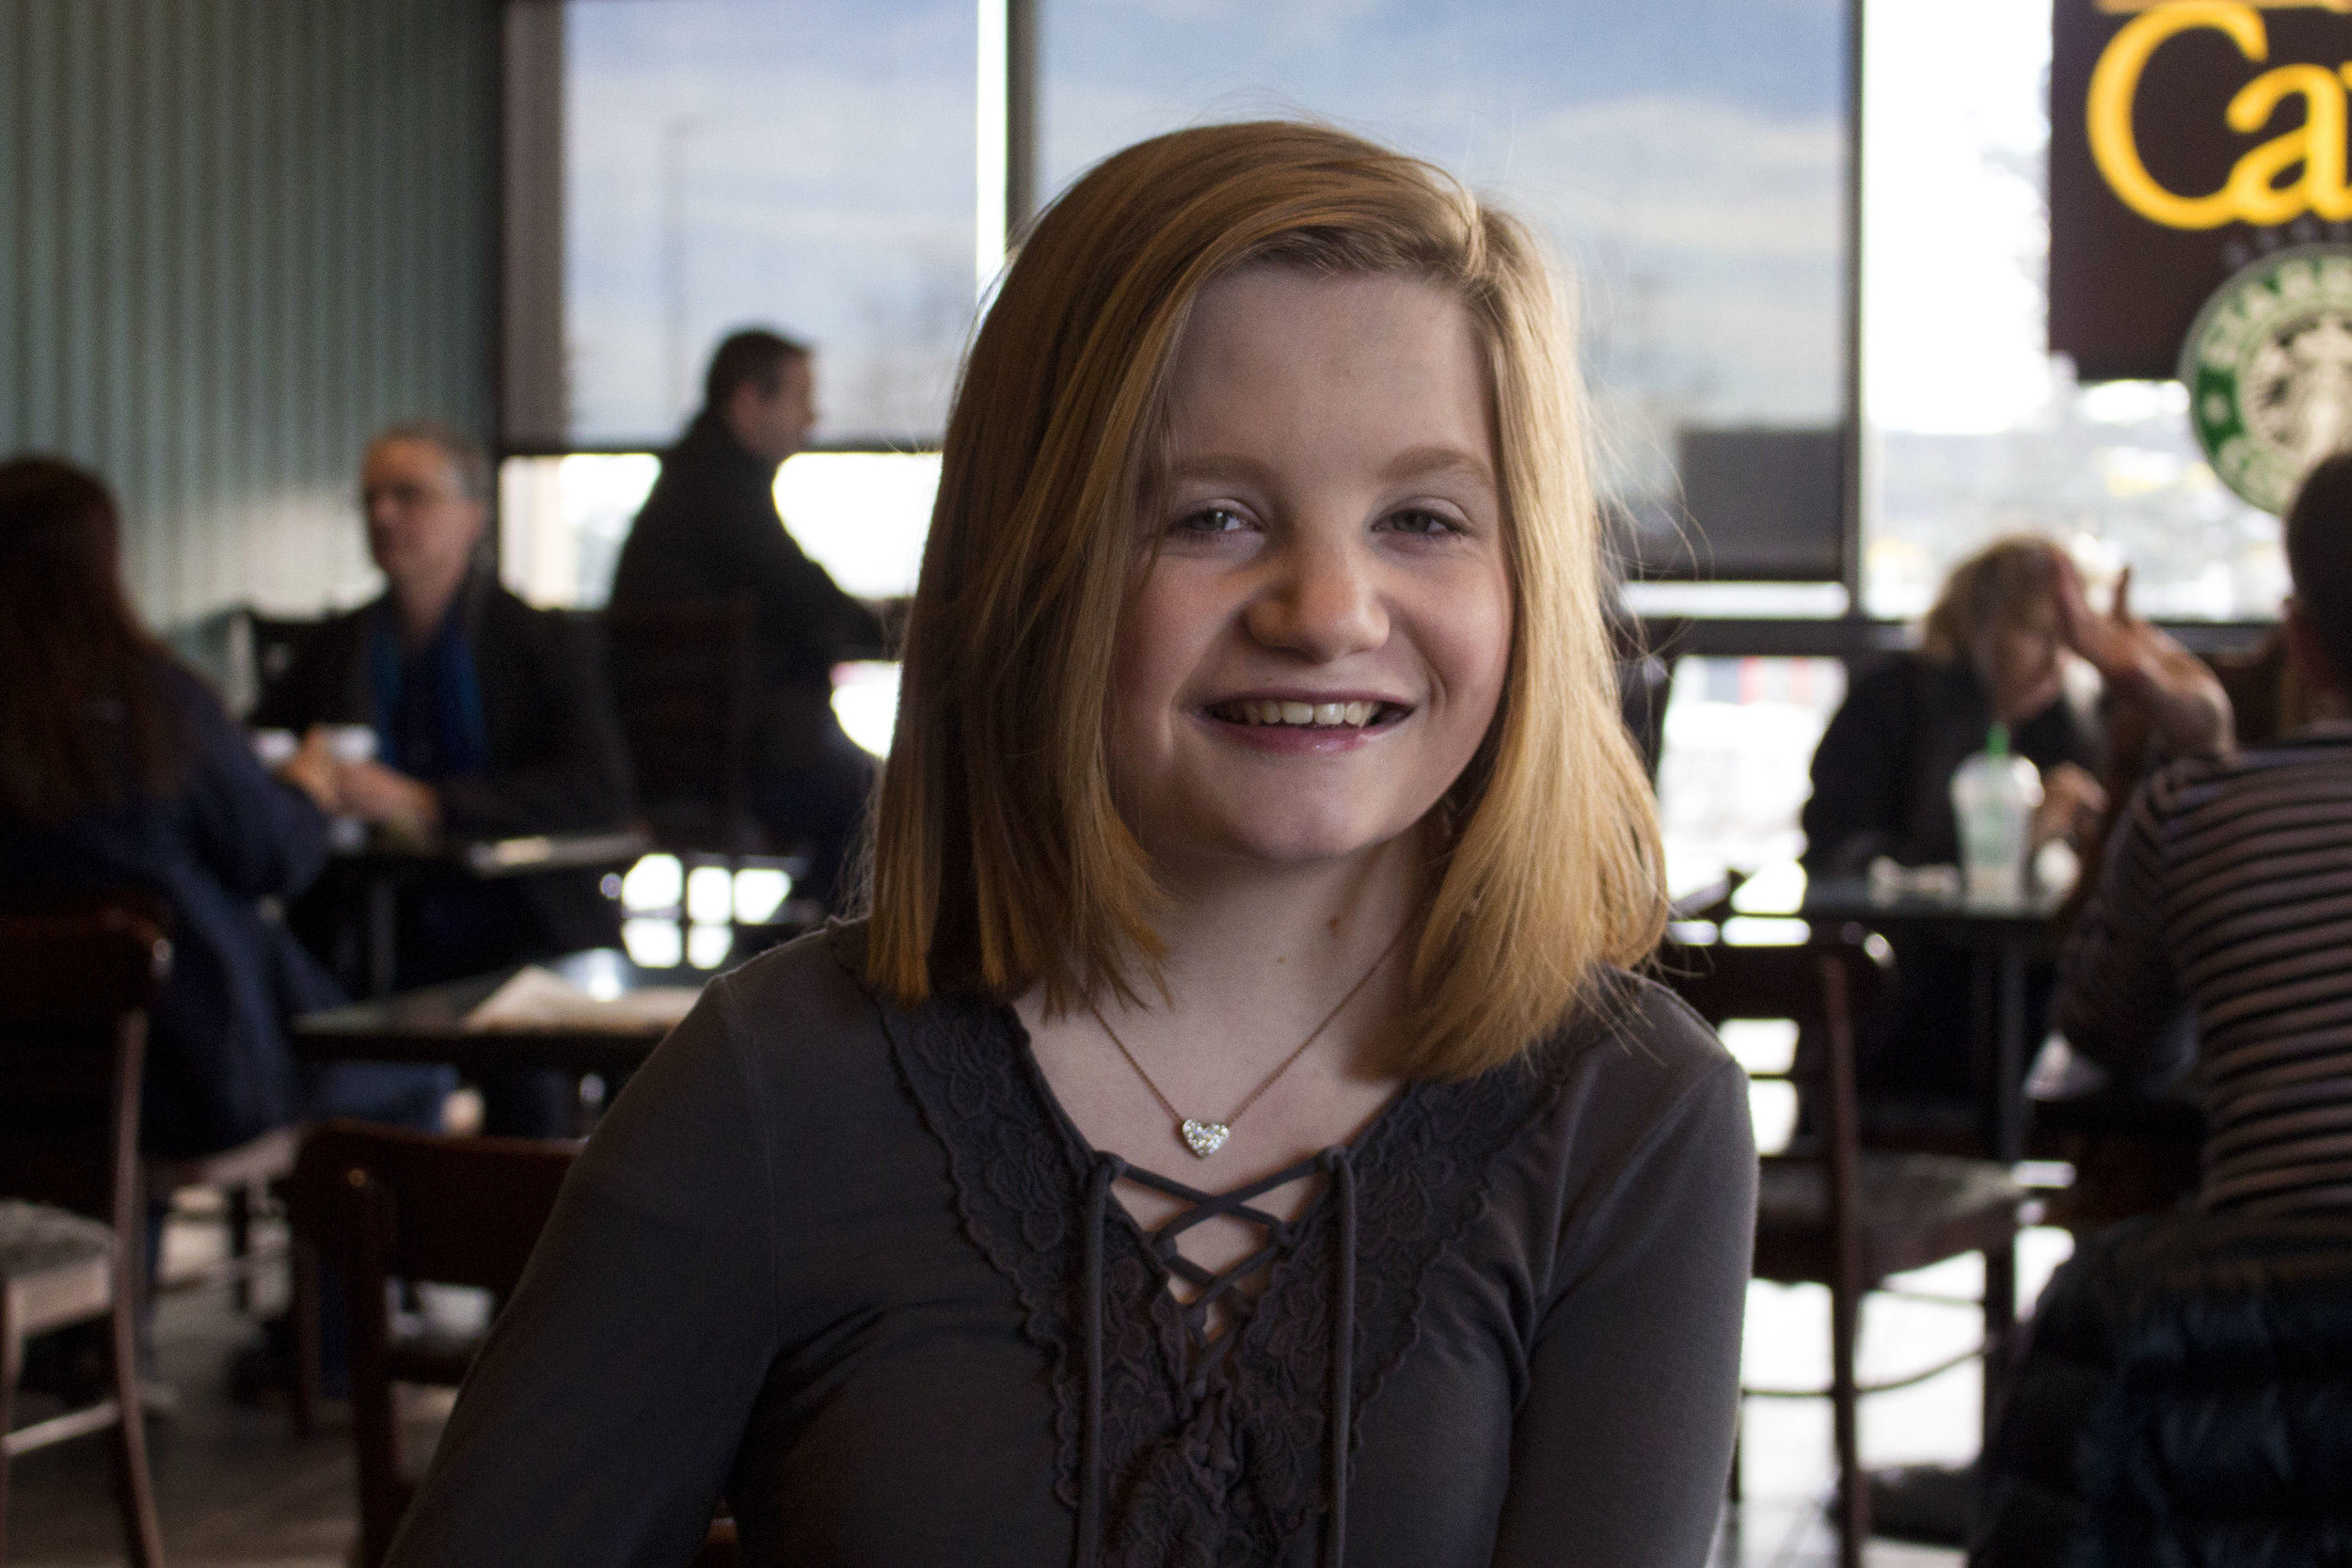 """Despite having health issues, 14-year-old Ashley Perry takes action in the Anchorage community through the creation of the """"Shelter Animals Program."""" Photo credit: Mizelle Mayo"""